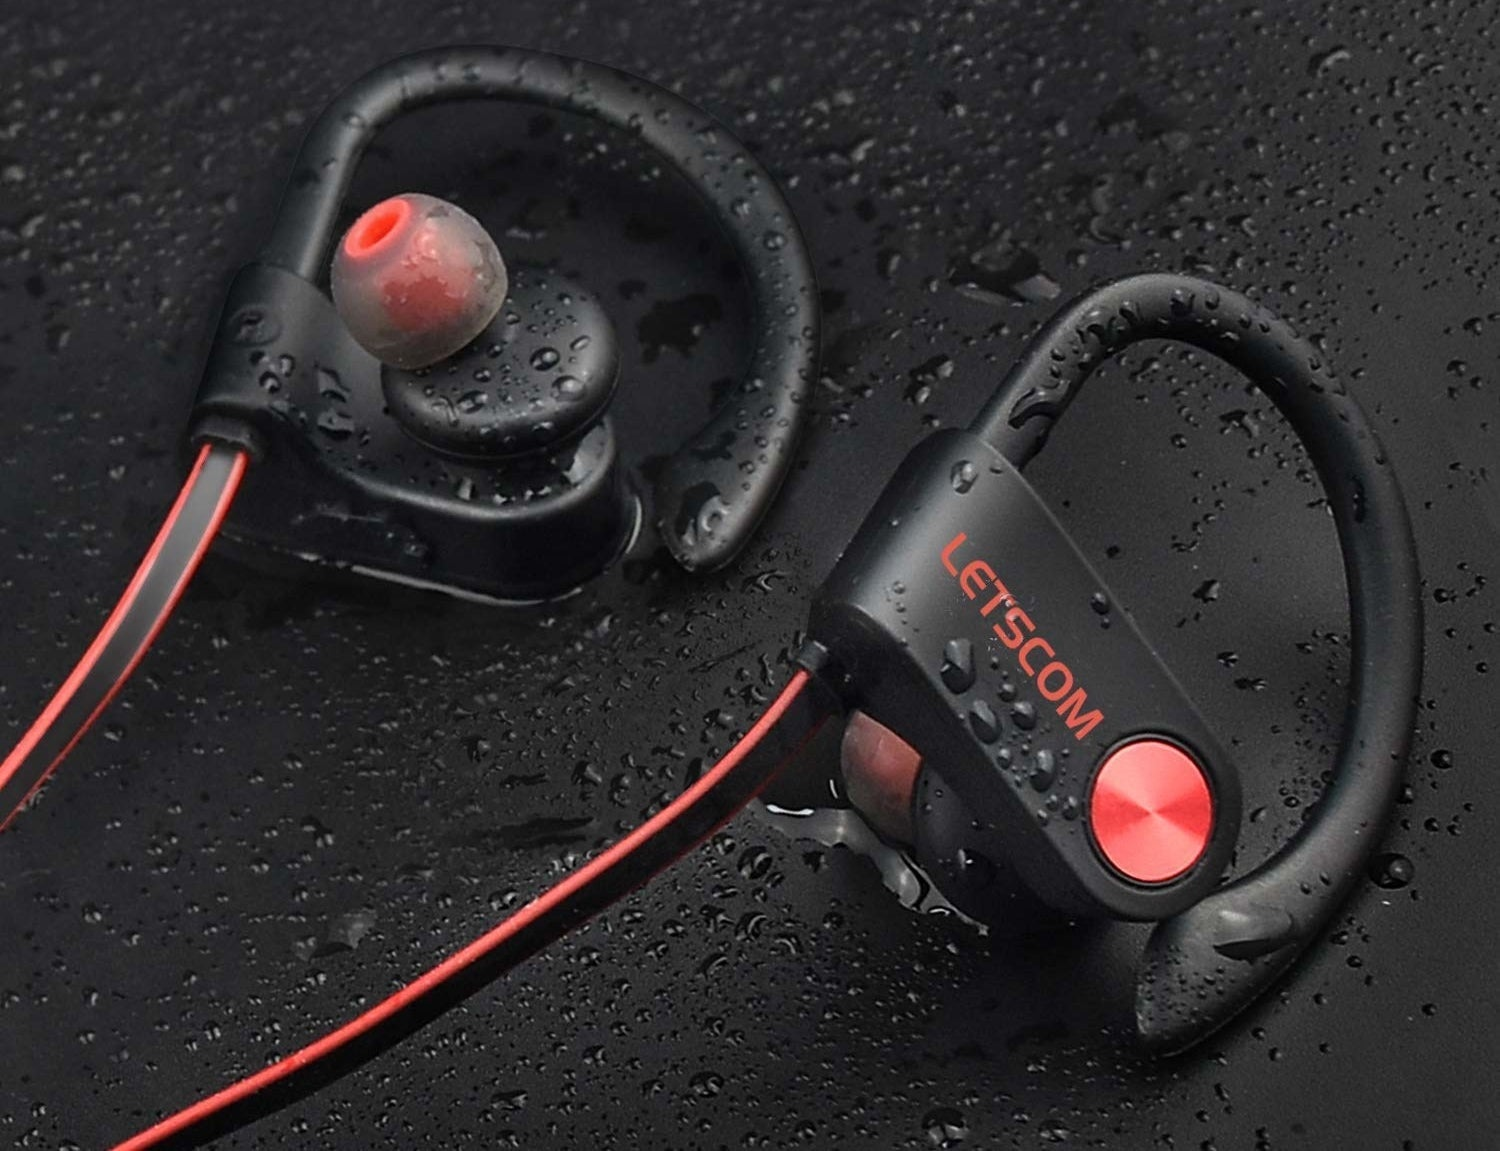 earbuds with over-ear pieces laying among droplets of water